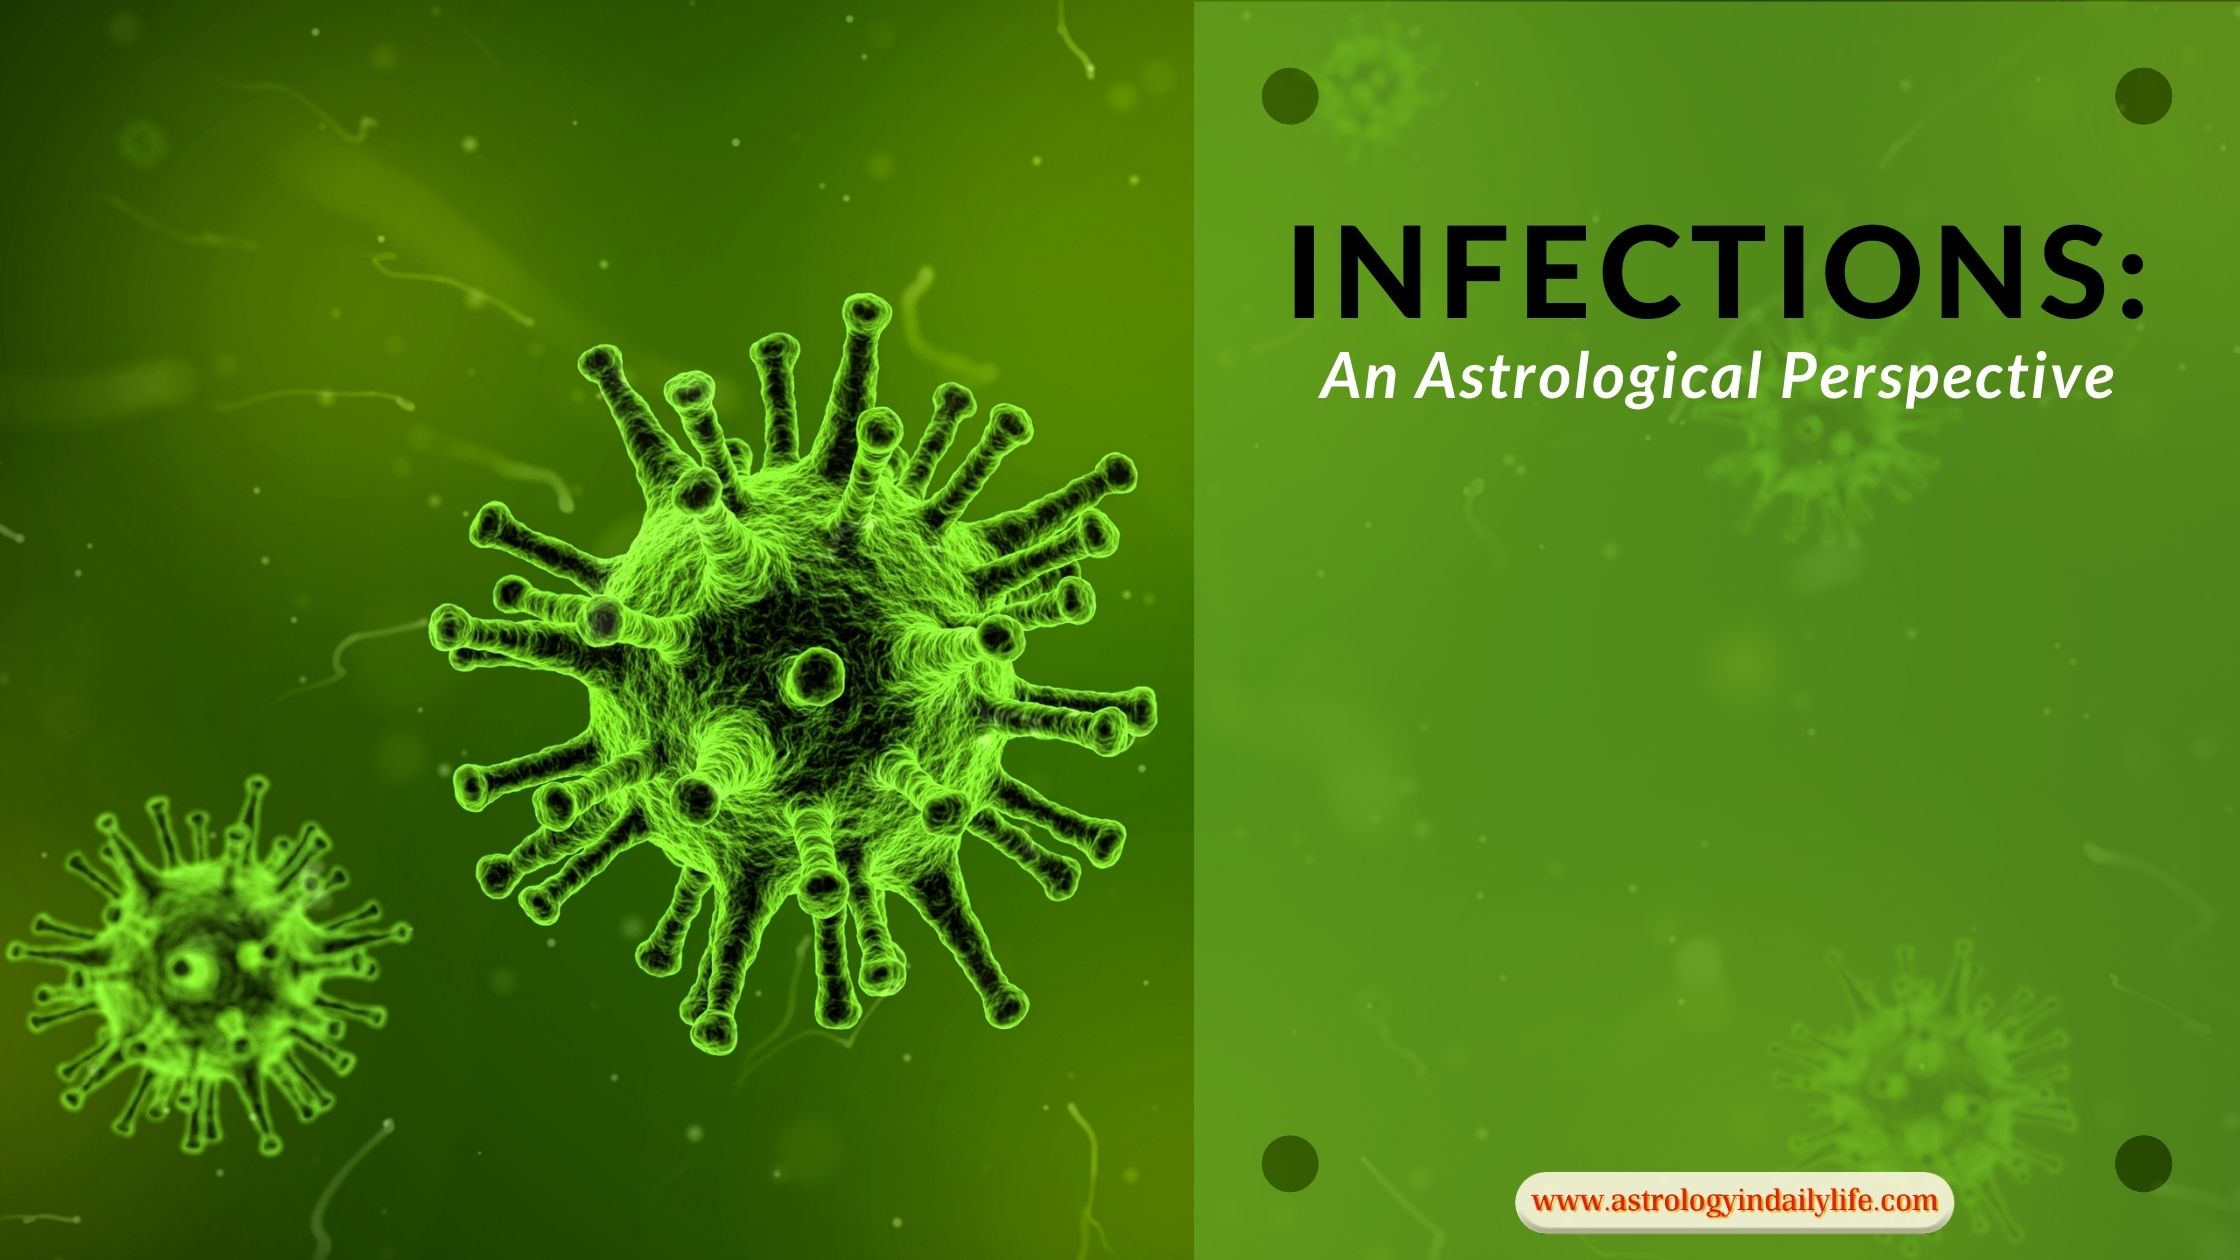 ASTROLOGY AND VIRAL INFECTIONS